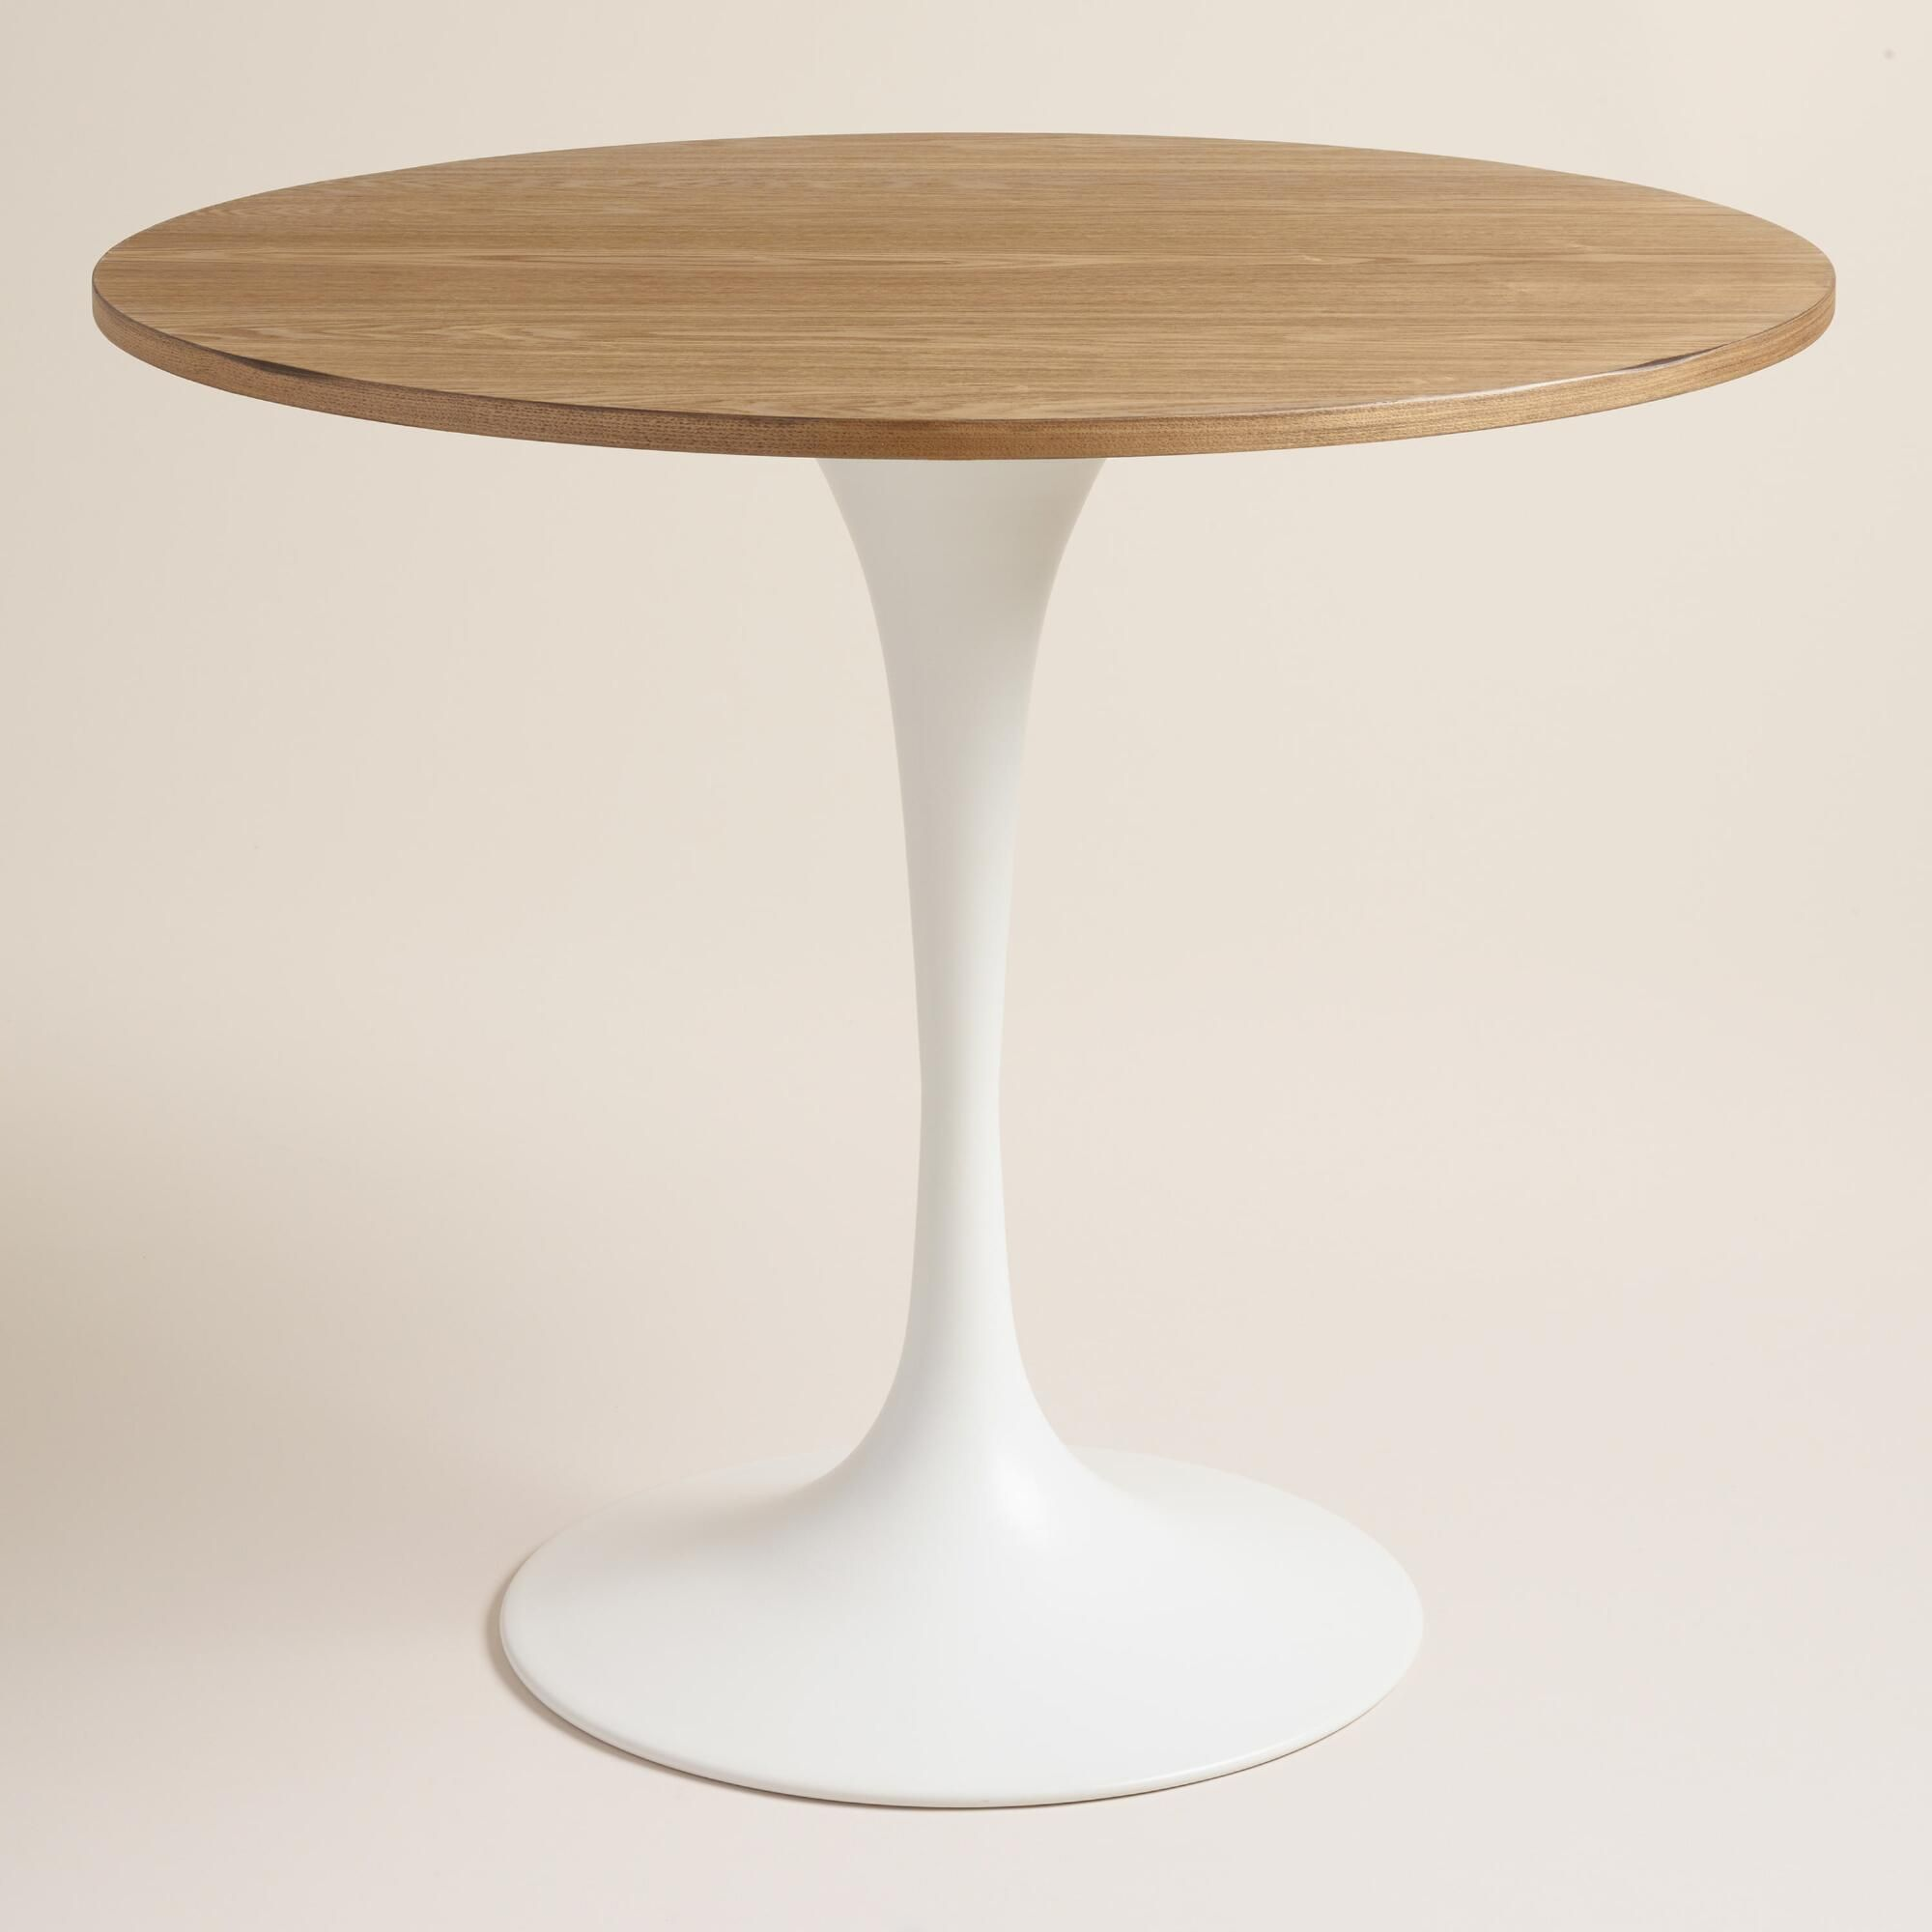 Wood And White Metal Leilani Tulip Dining Table Tulip Dining Table Rustic Dining Room Table Round Dining Table